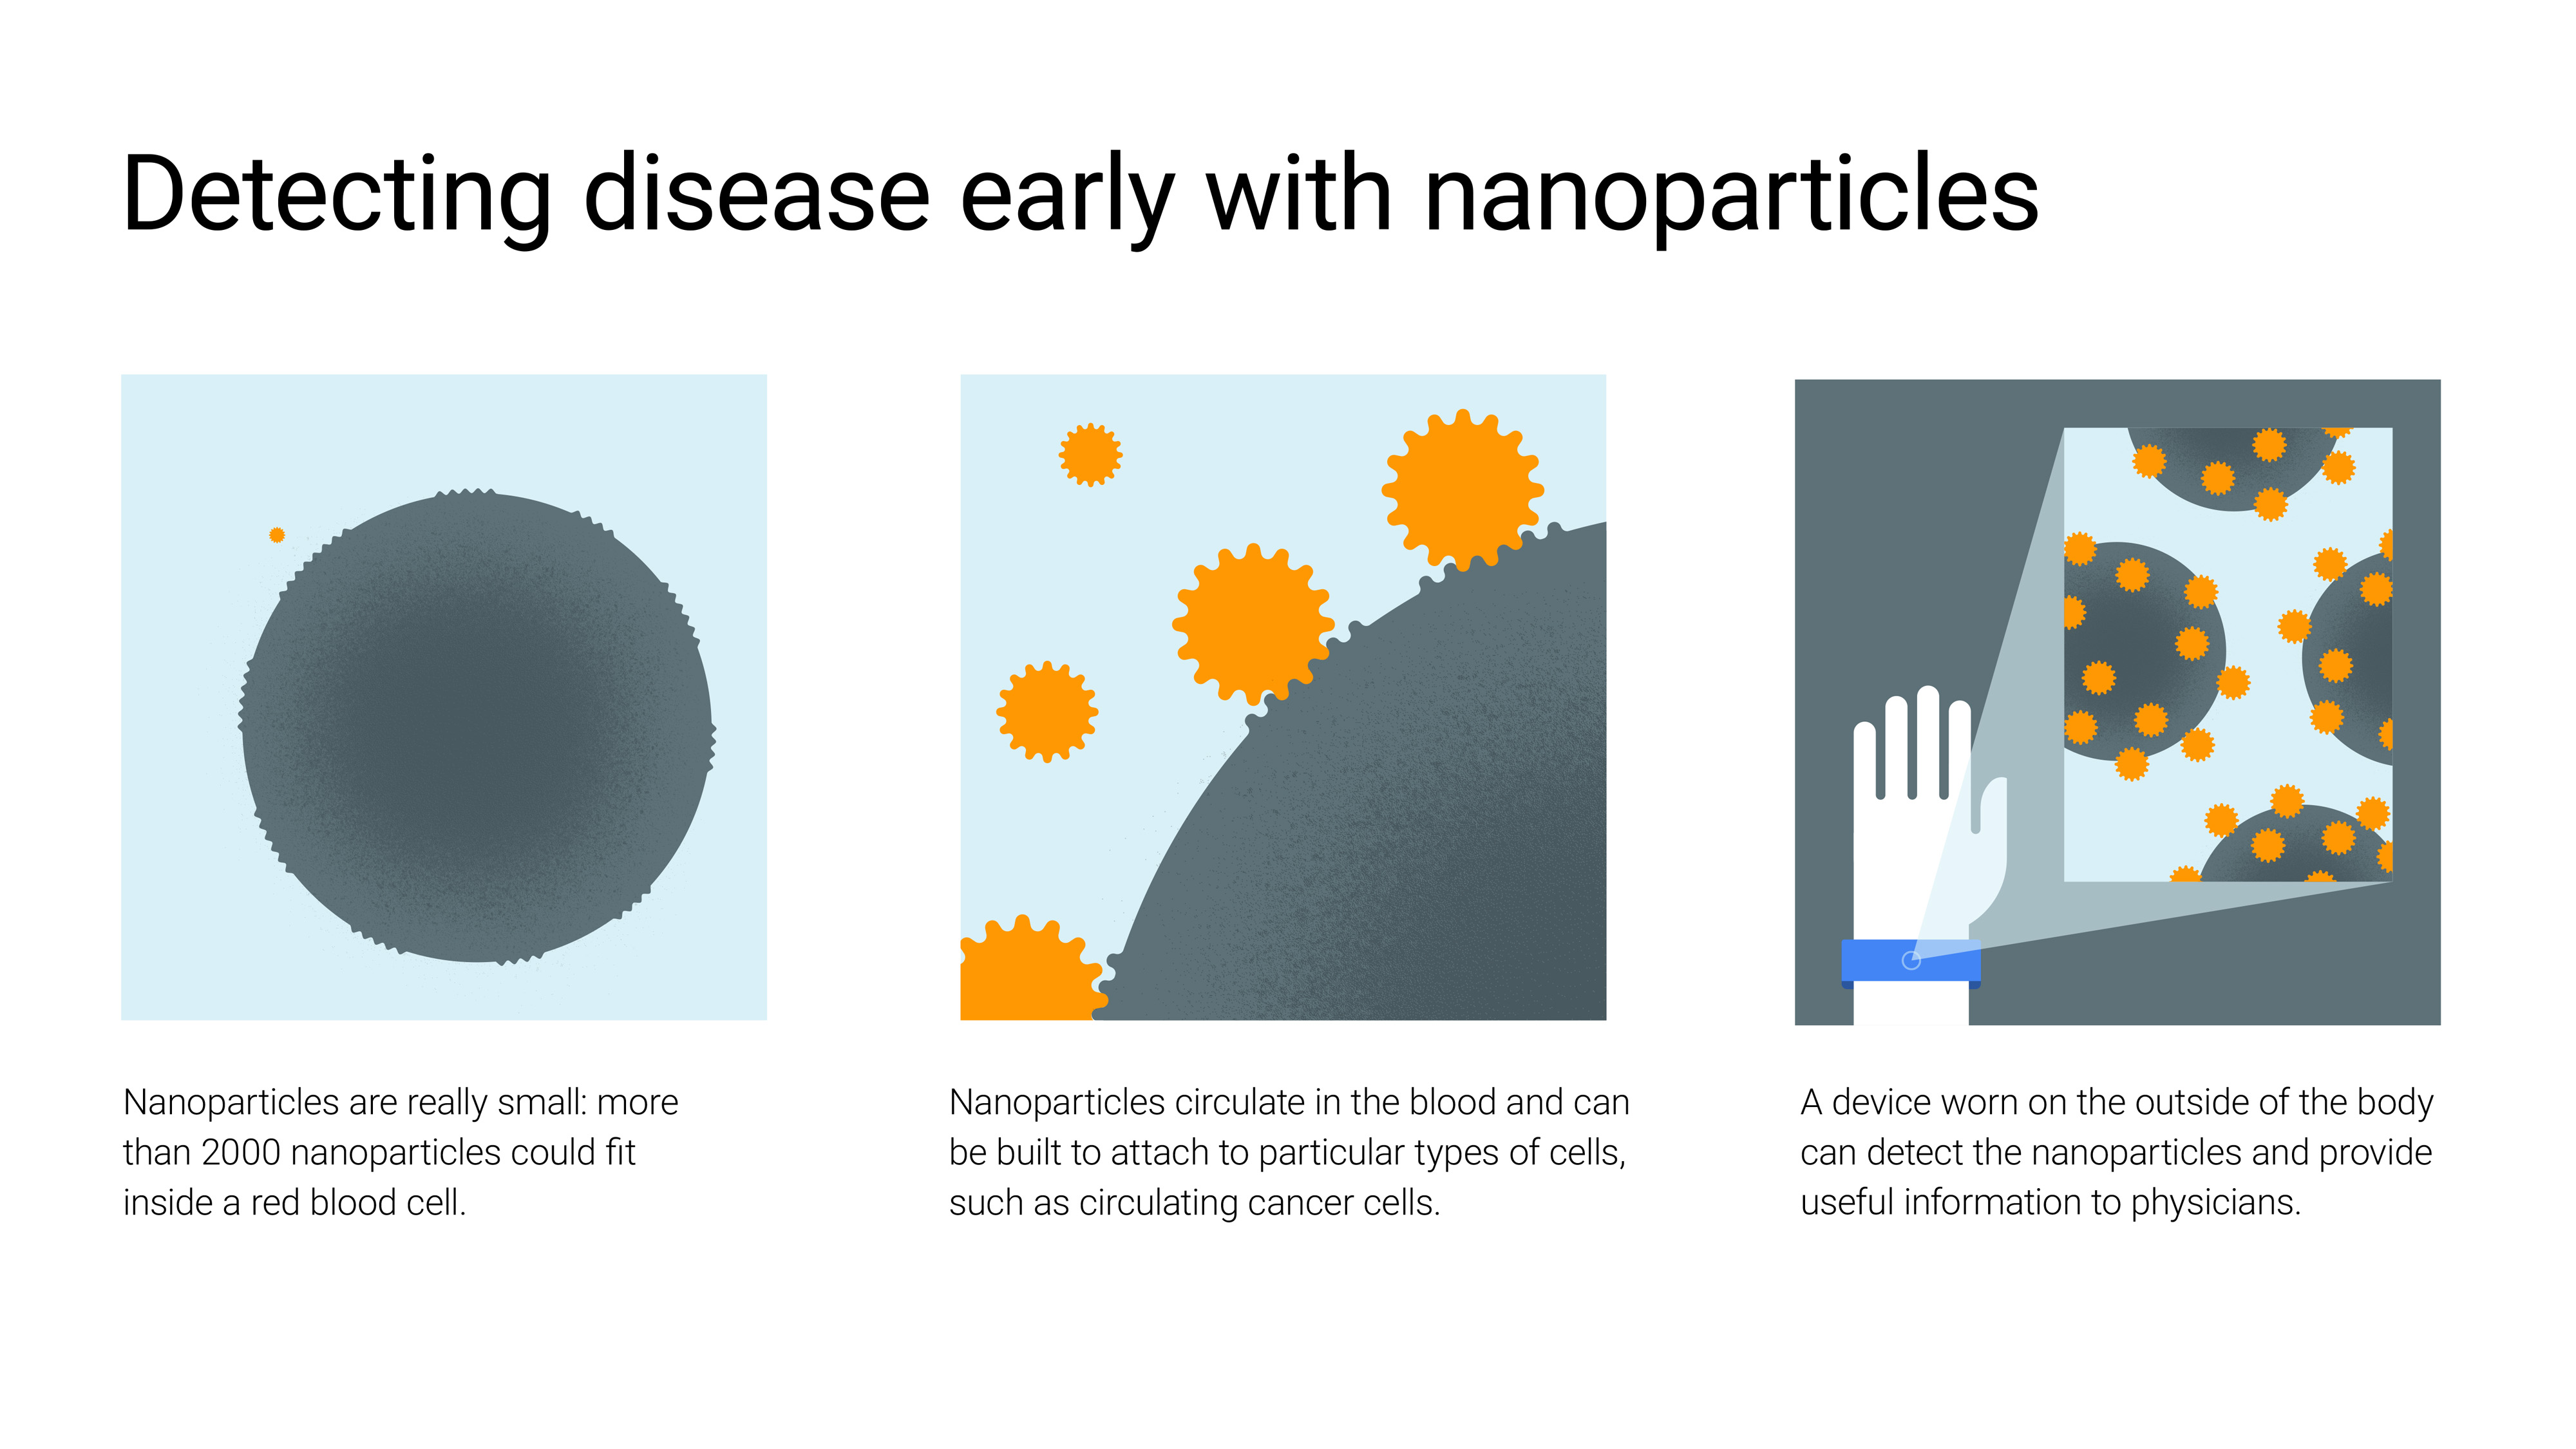 Google X plans to use nanotechnology to catch and diagnose diseases earlier.